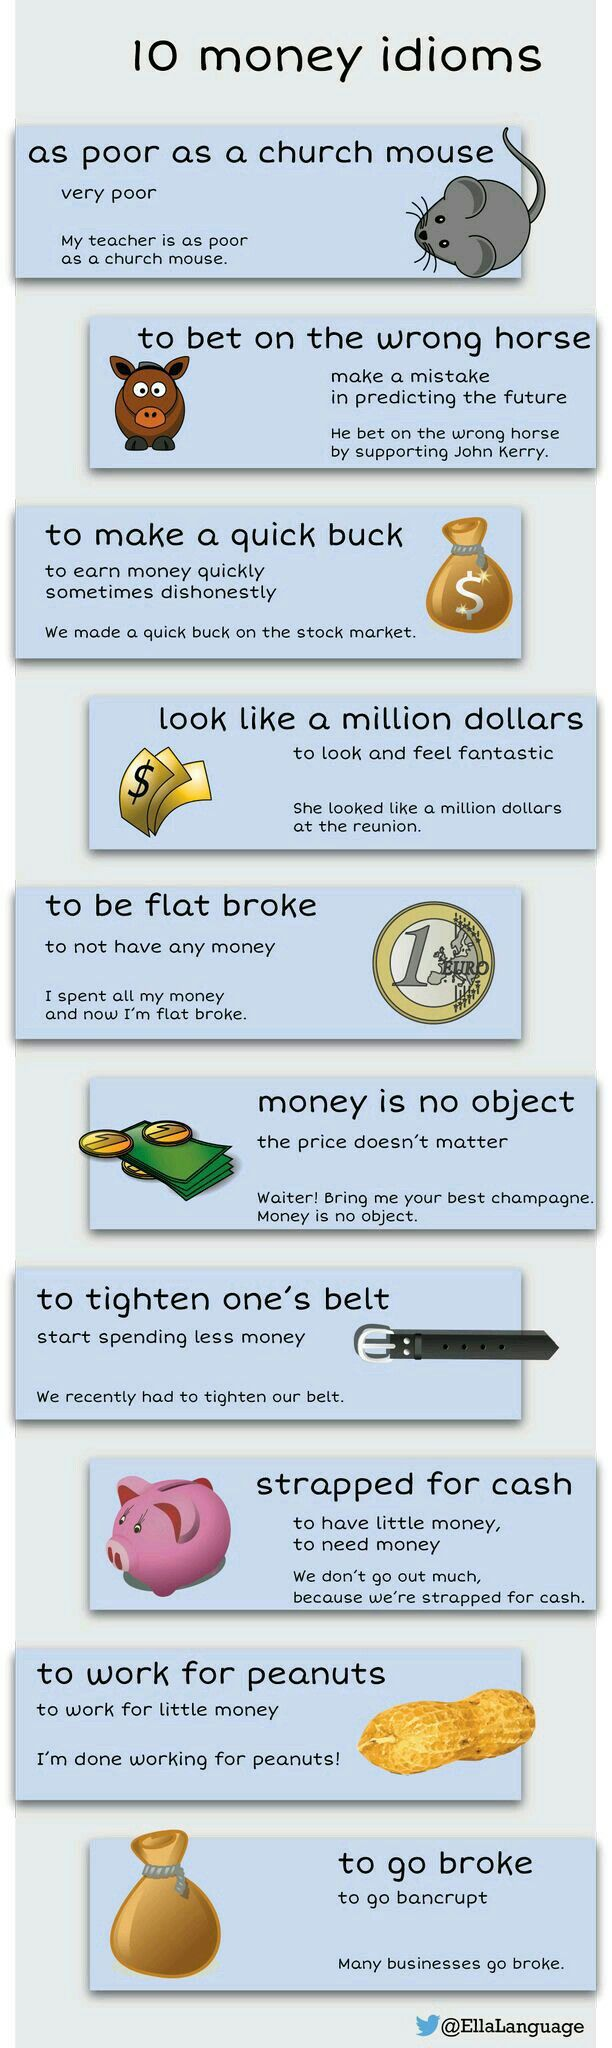 Best English Idioms Images On Pinterest  English Idioms   Money Idioms  Learn And Improve Your English Language With Our Free  Classes Call Karen Luceti Or Email Kluceti To Register For Classes